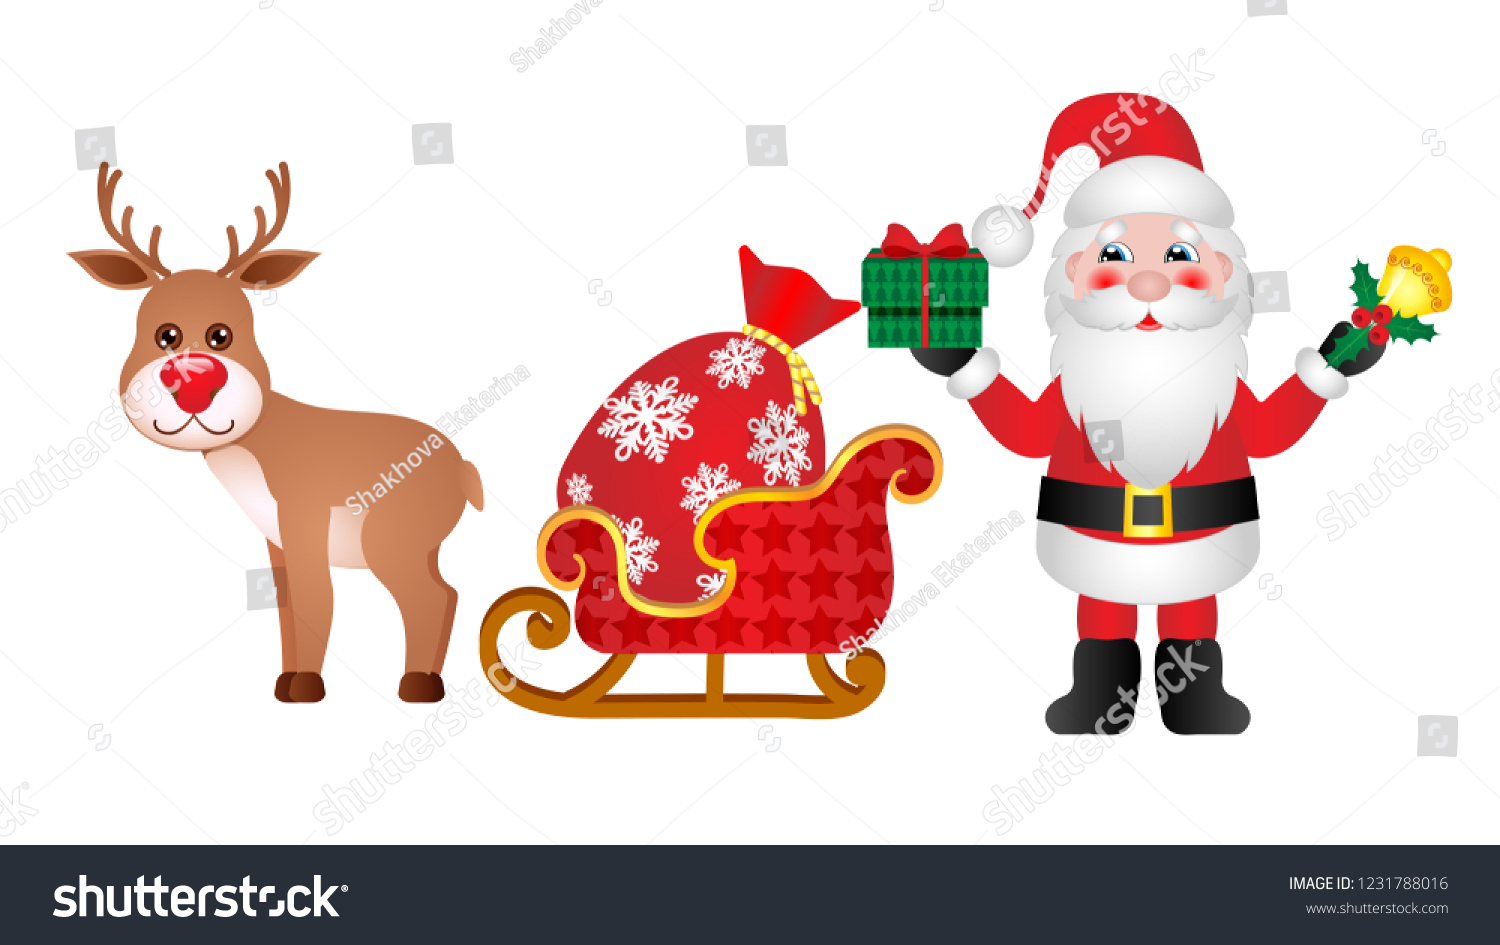 hight resolution of rudolph the red nosed reindeer and santa claus clipart for your design